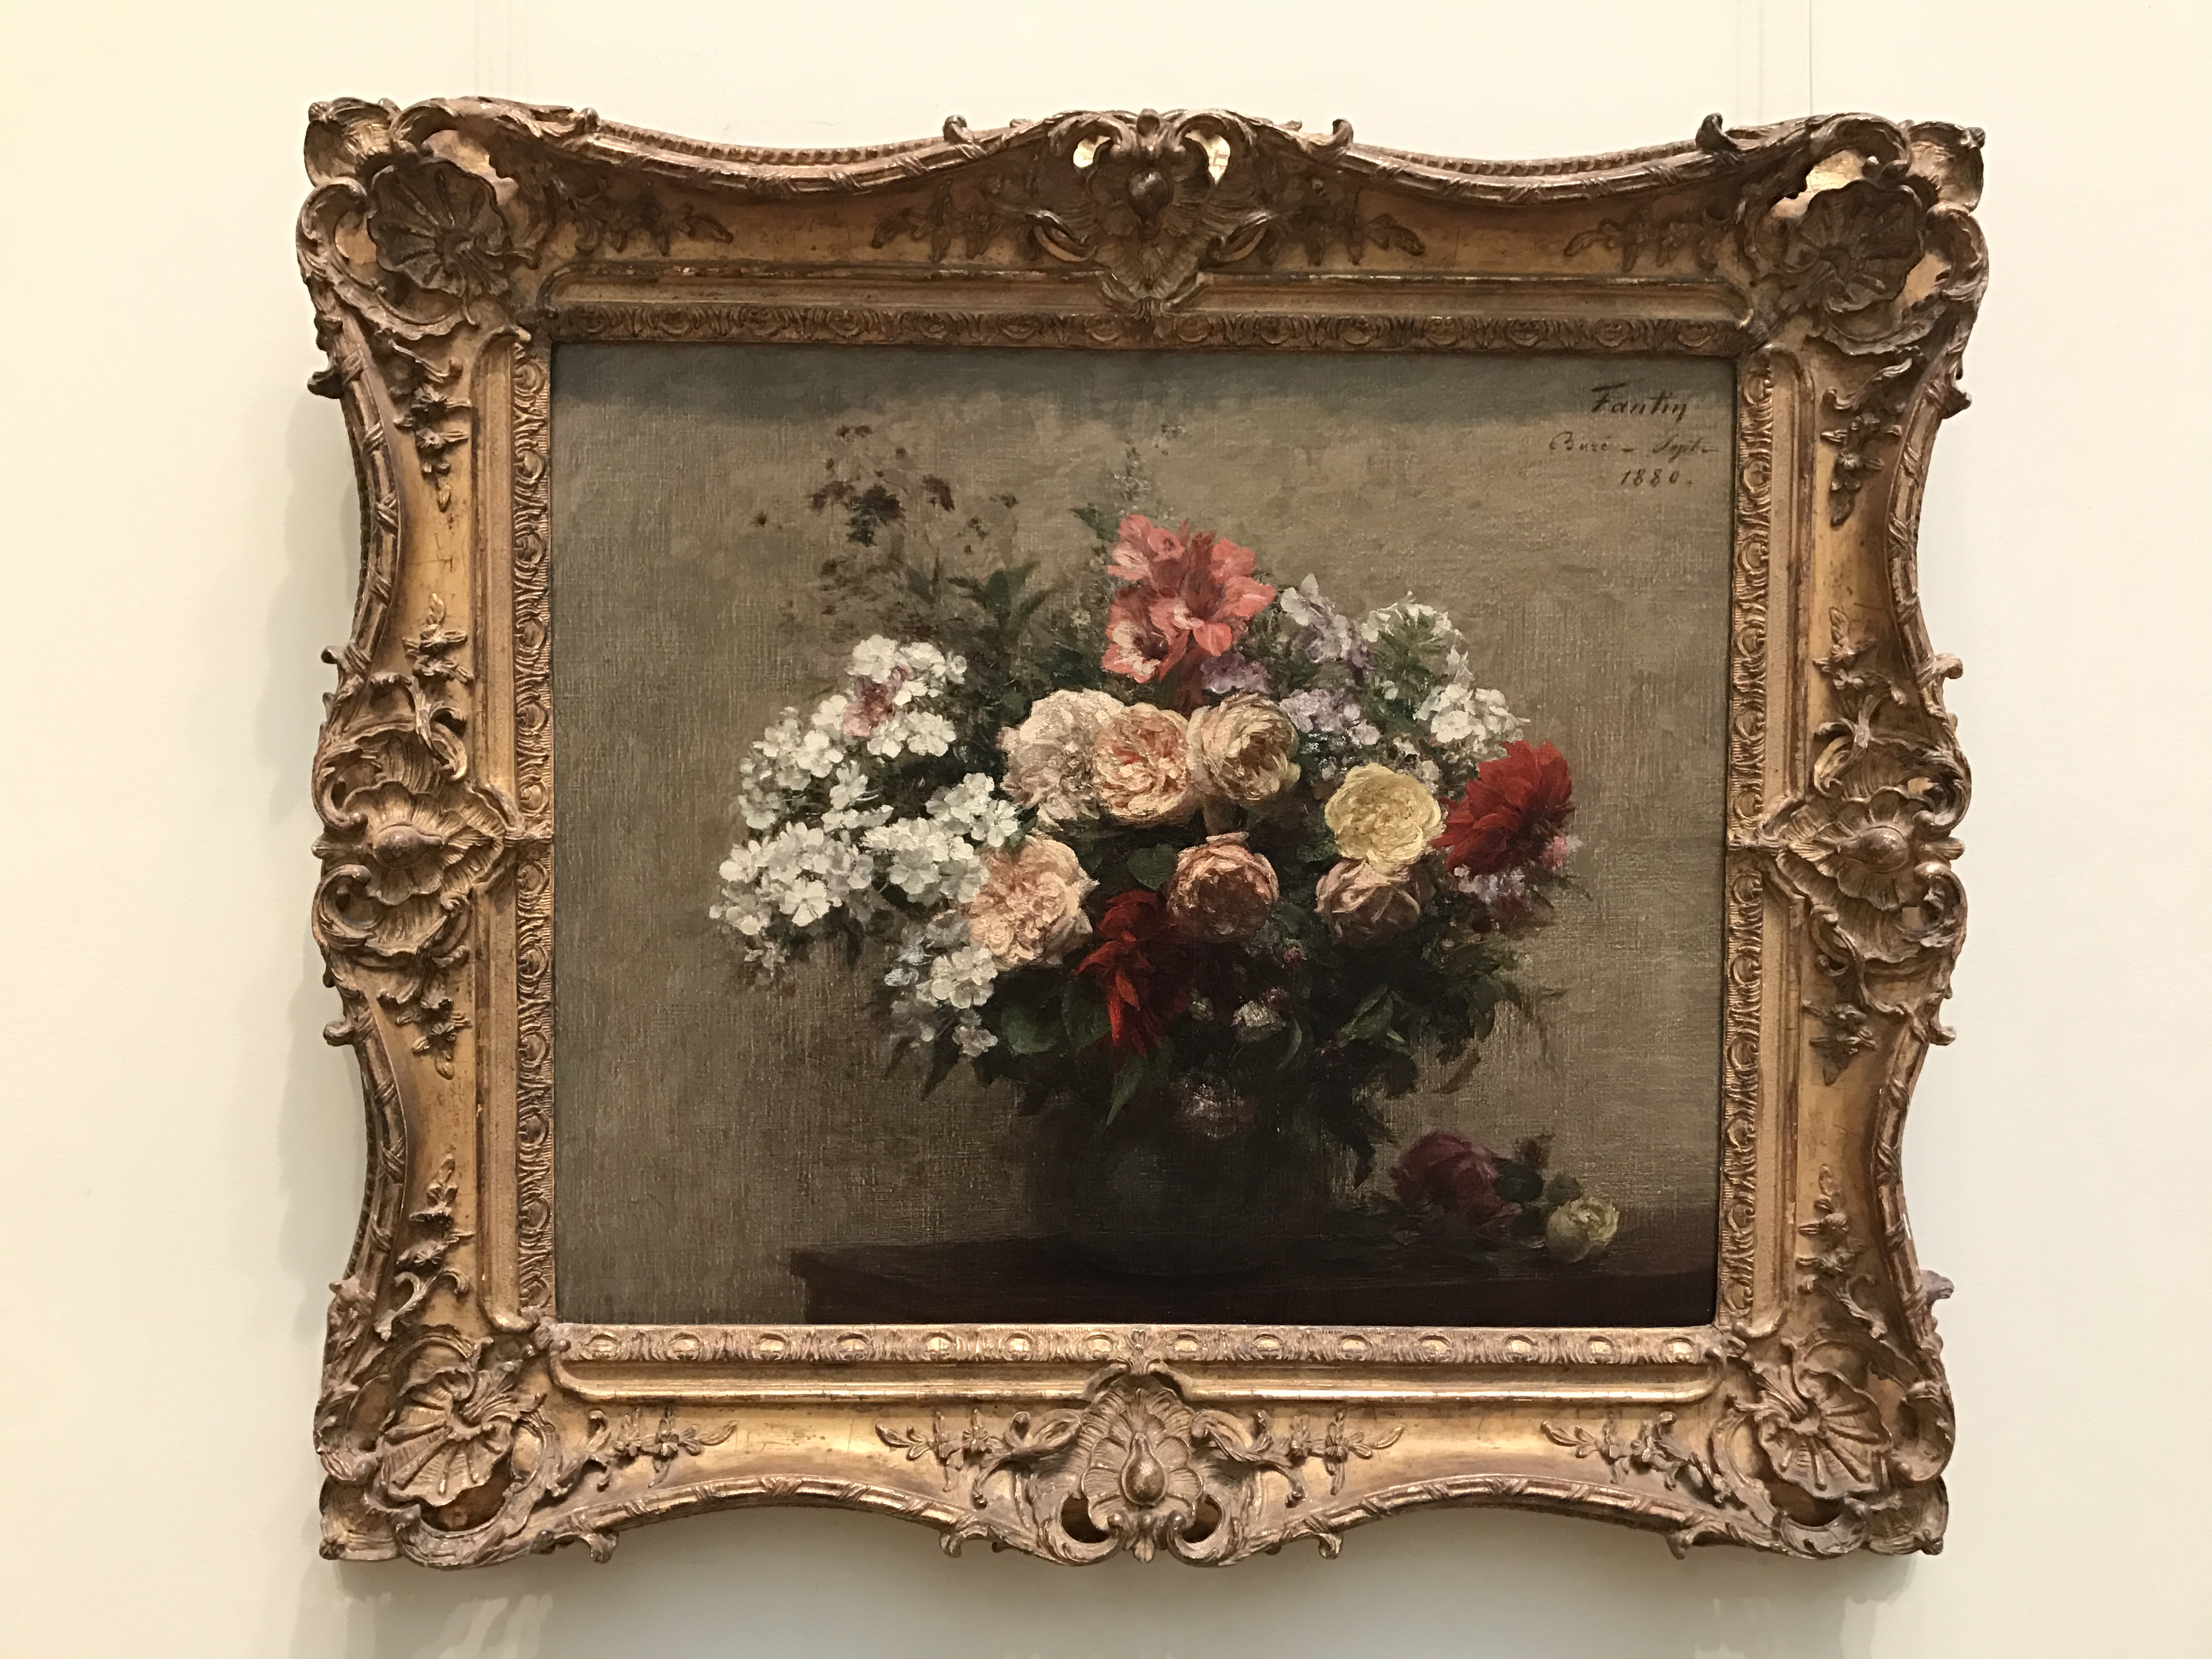 Summer Flowers by Henri Fantin-Latour, 1880, my photo, full frame